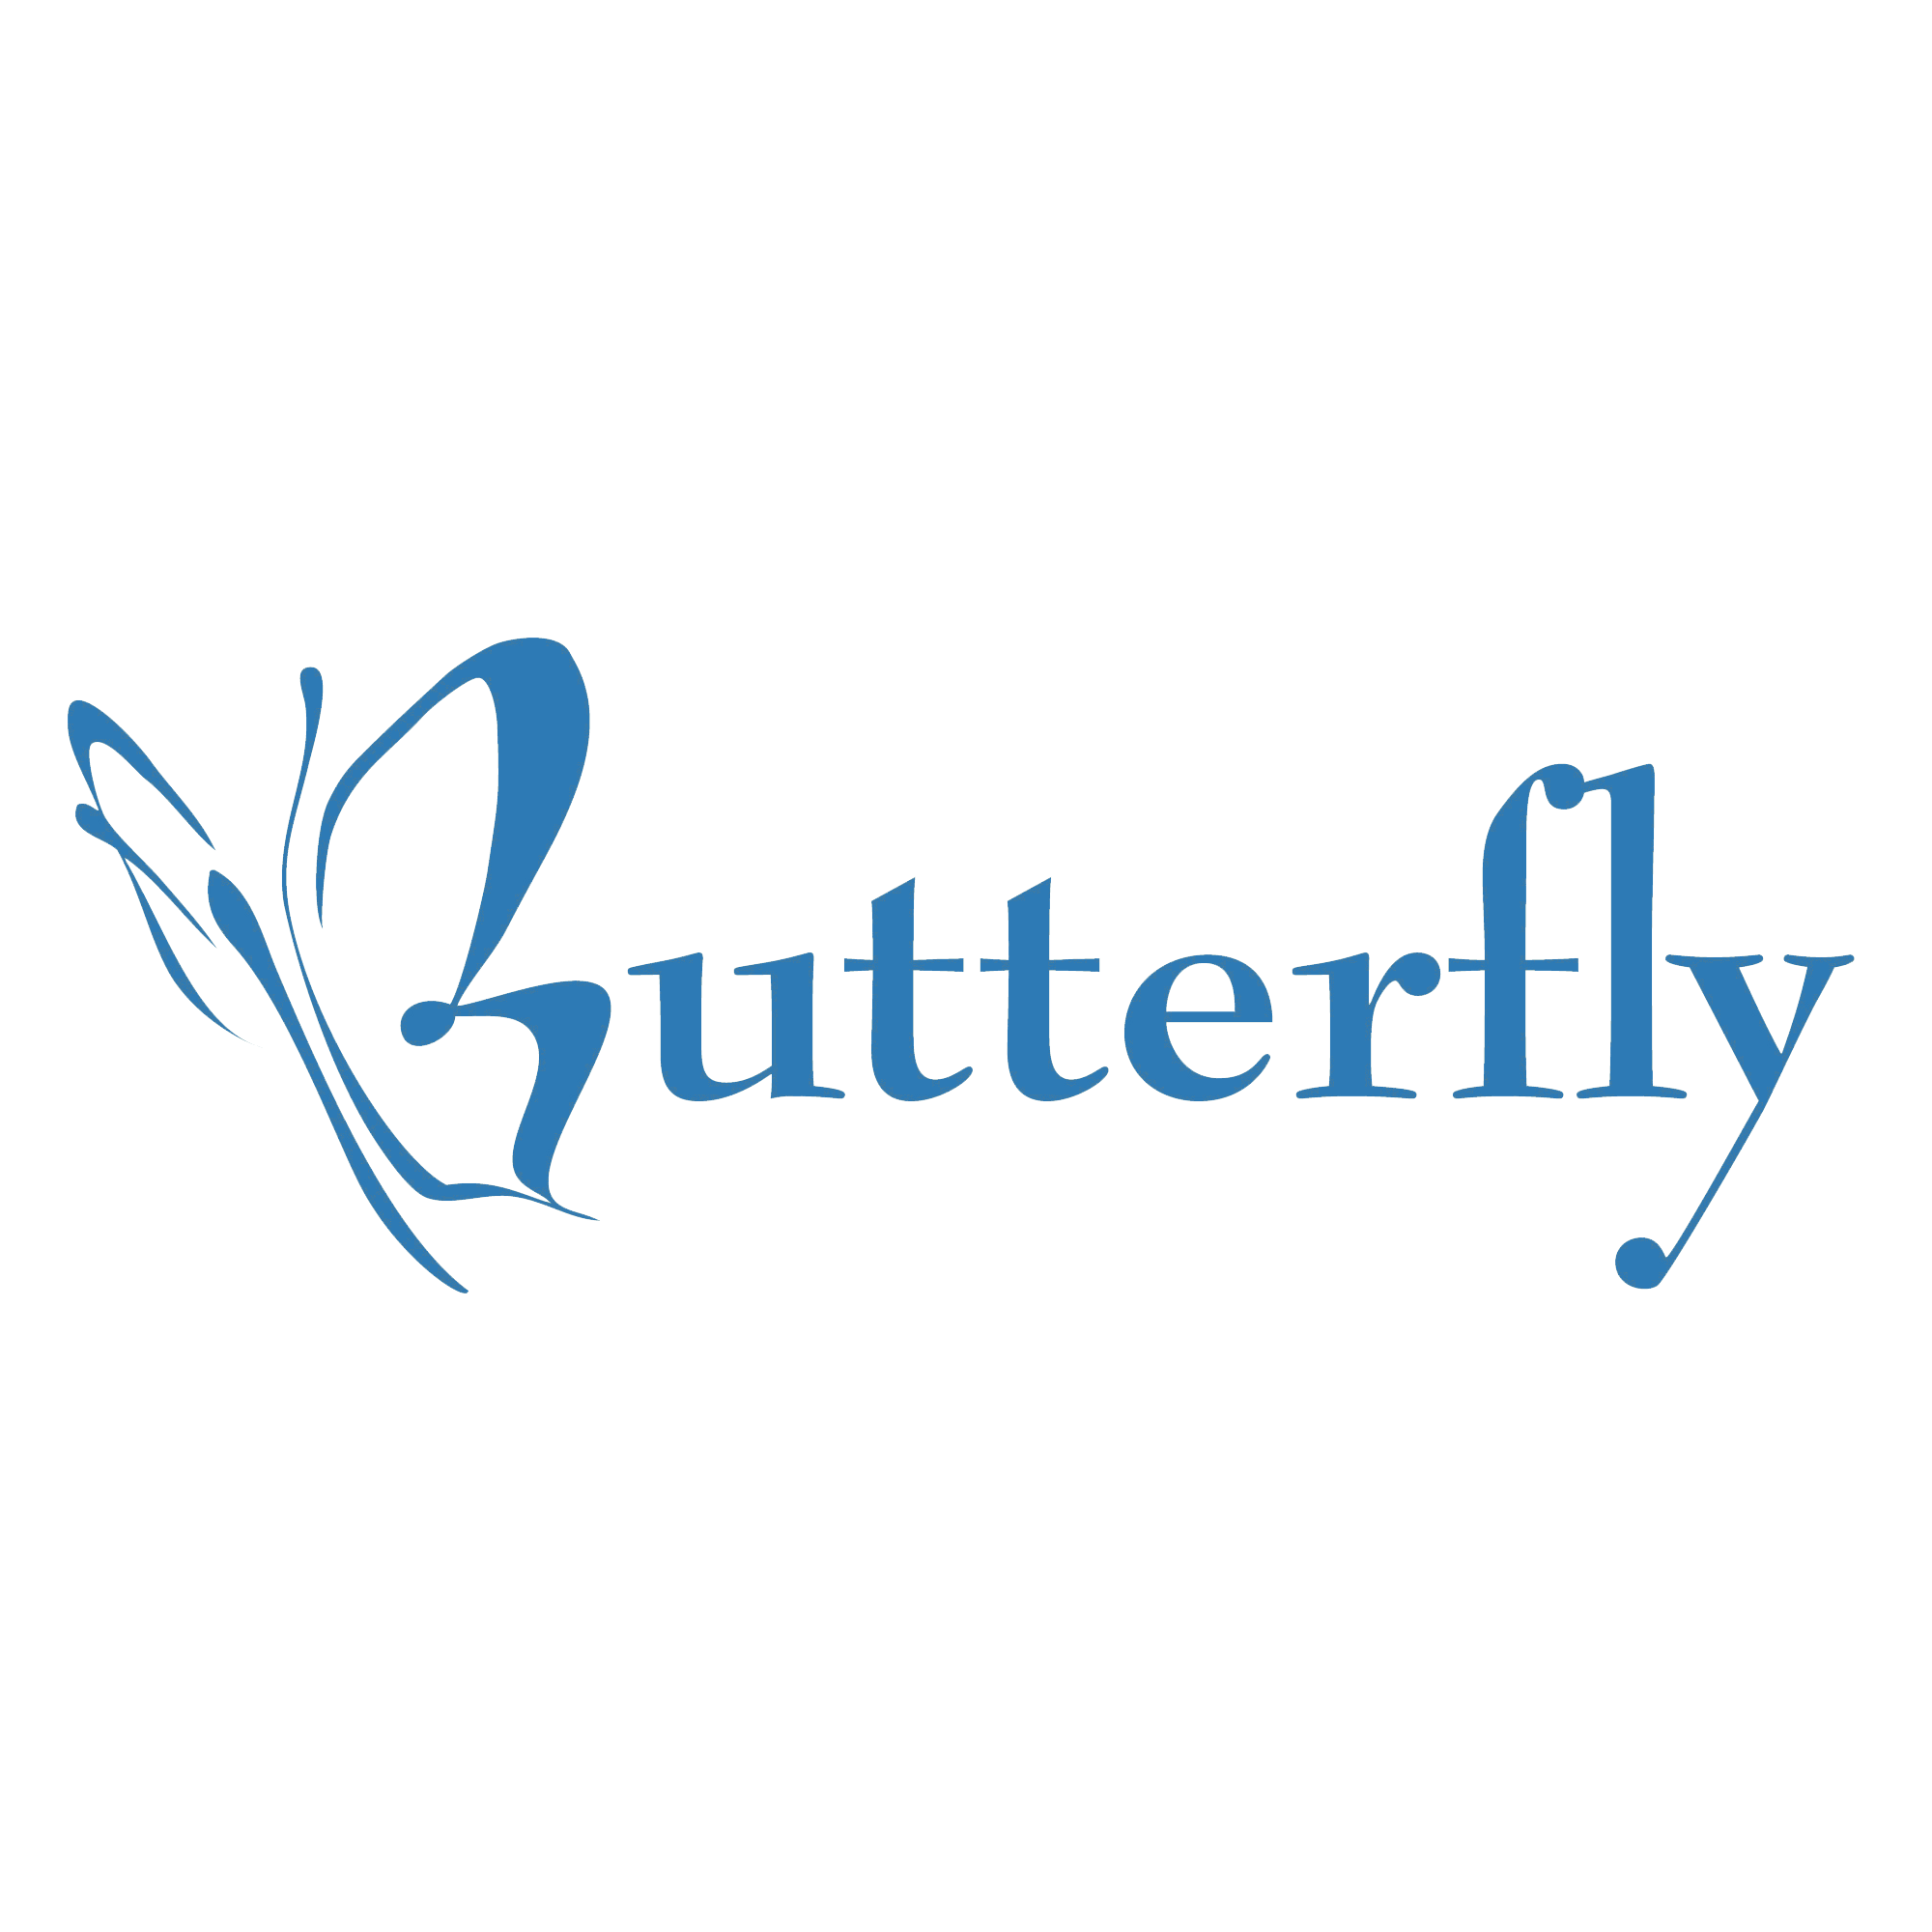 Logotype butterfly and letter b in different colour variants on a - One Half Of A Butterfly Is Used As The Letter B But The